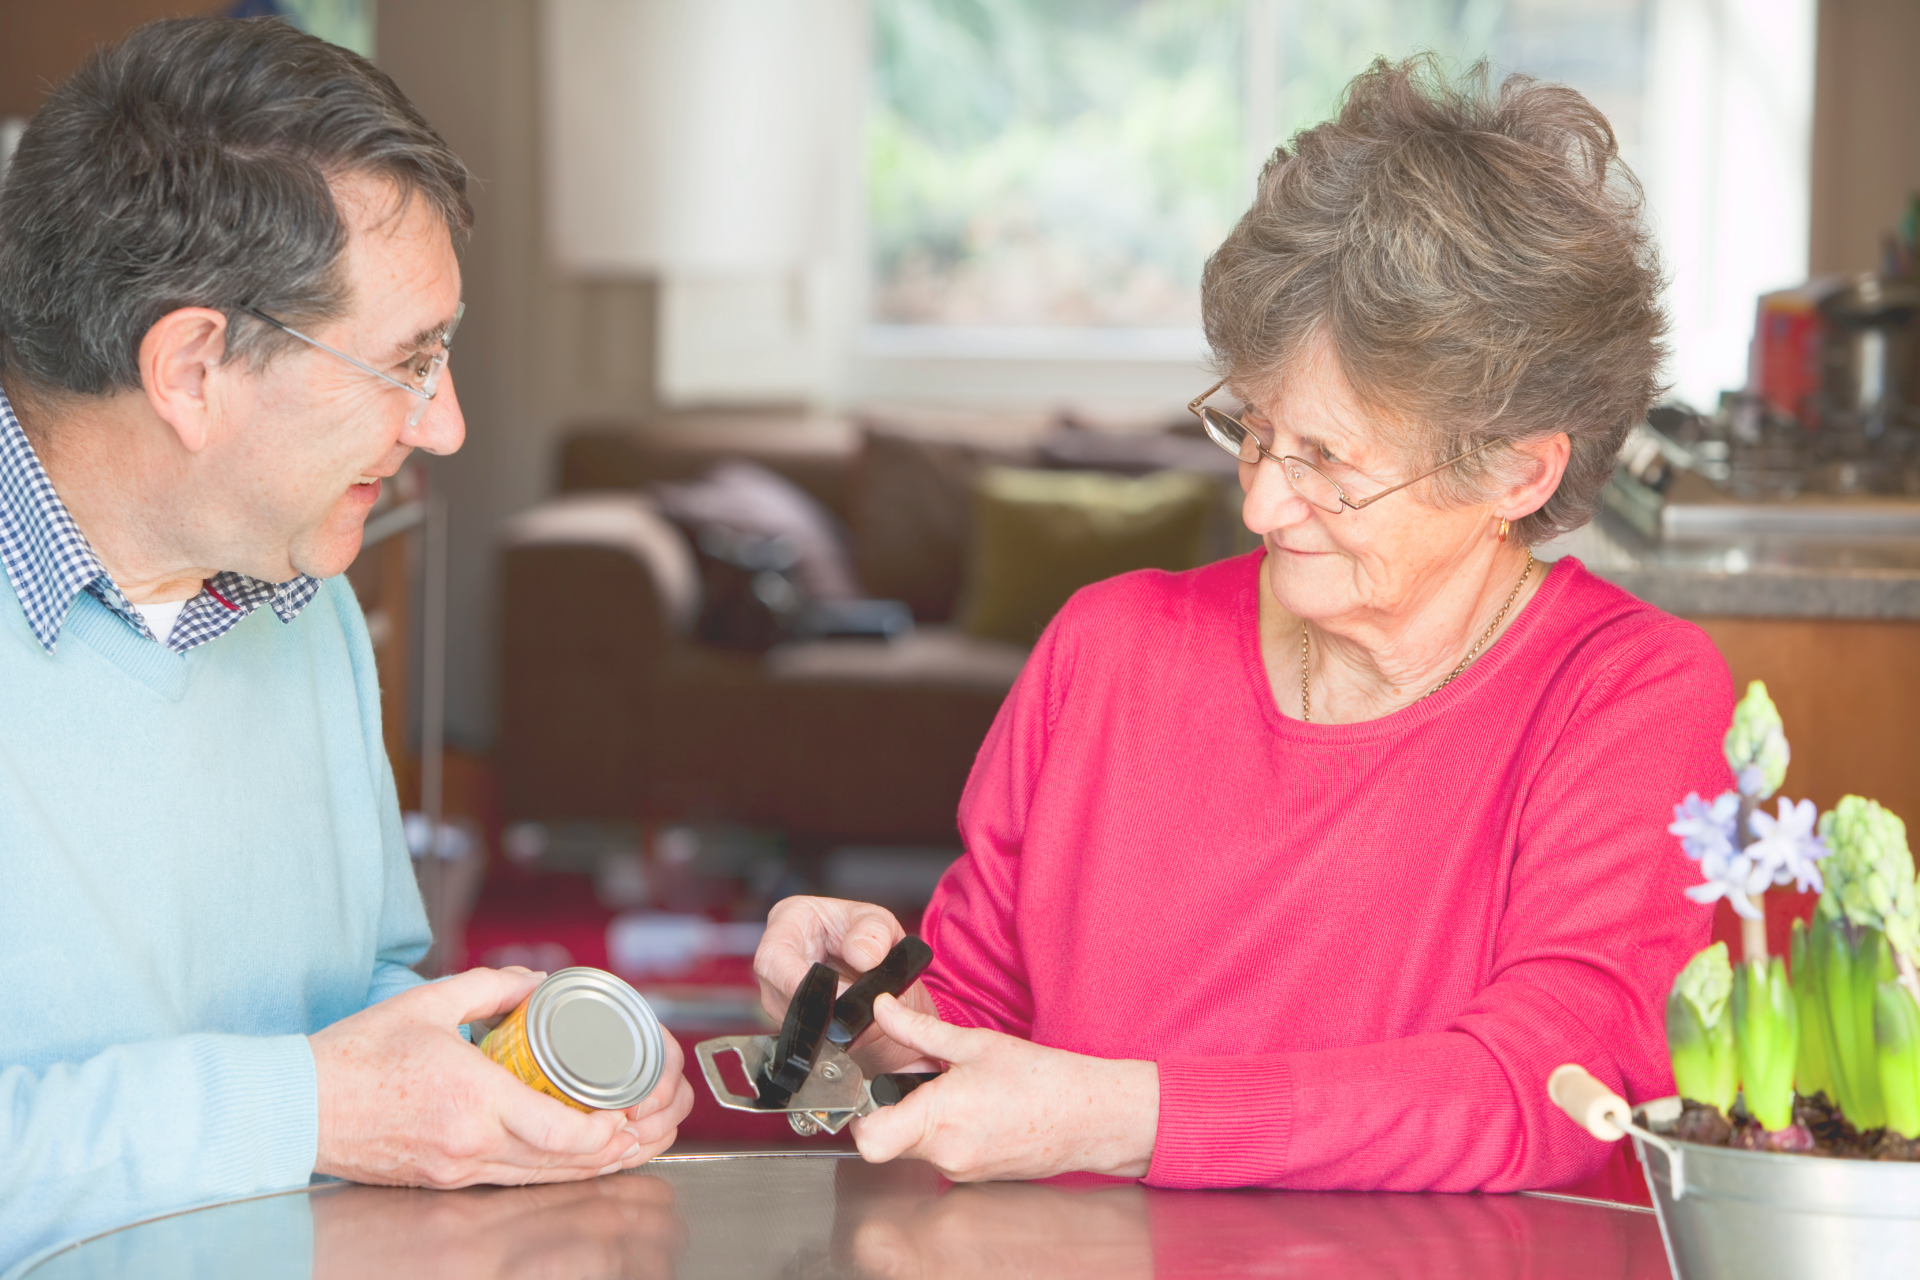 Occupational therapy support in the home